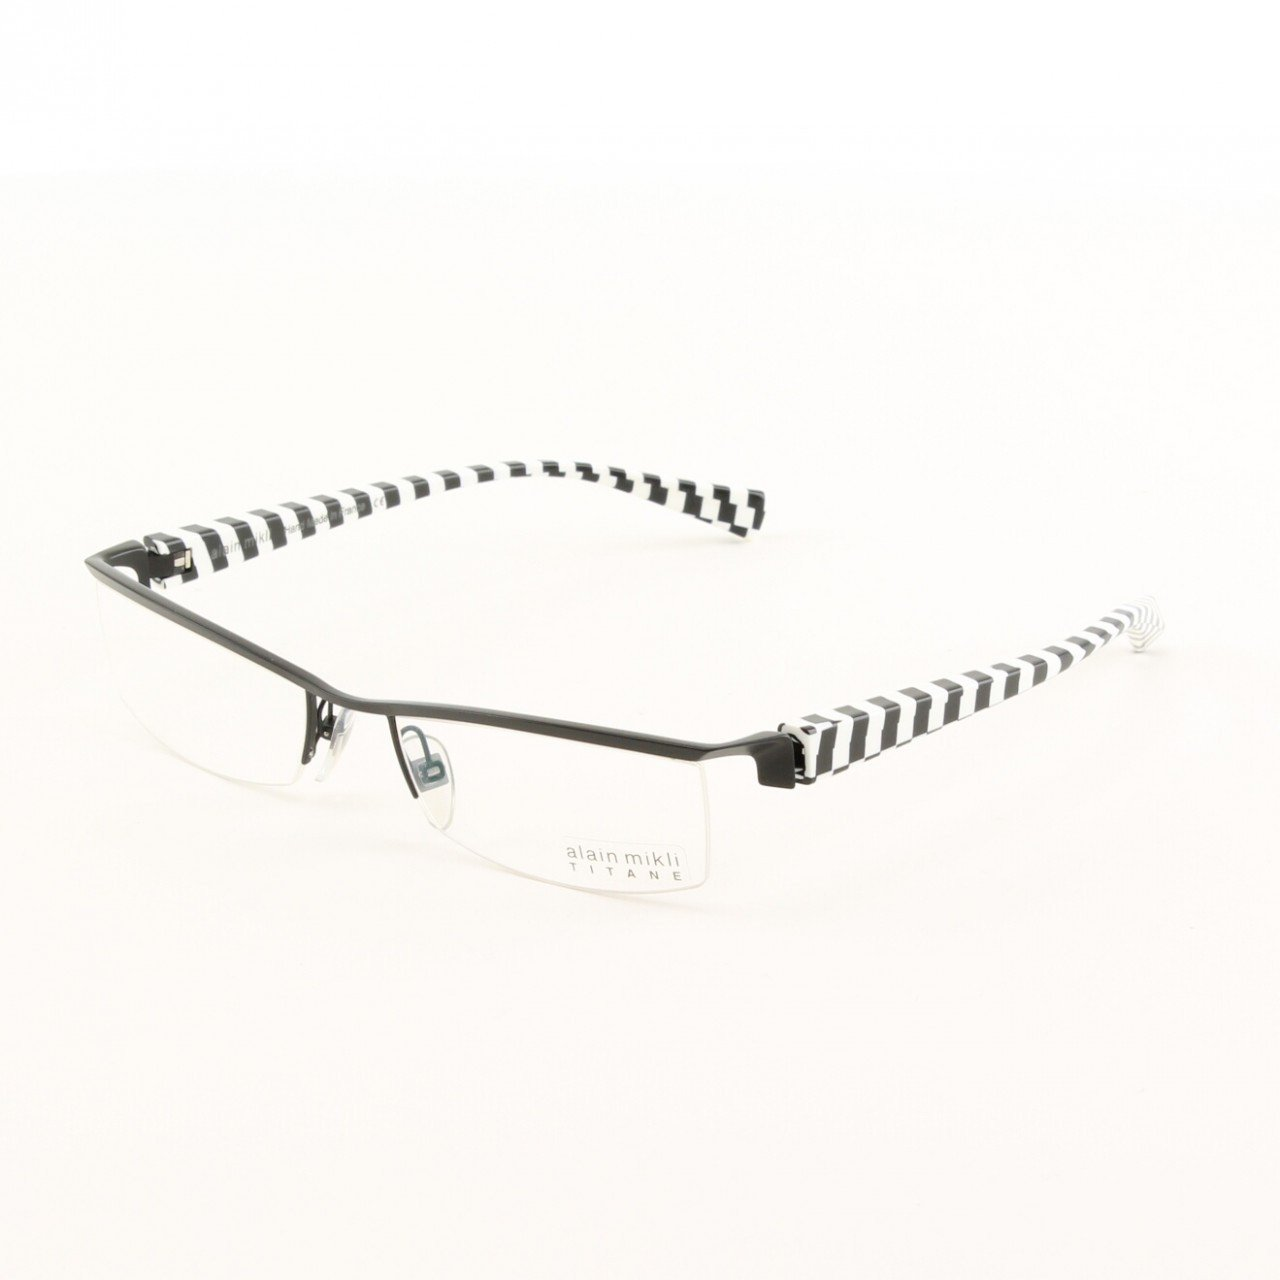 Alain Mikli Eyeglasses AL0523 Col. 11 Black Metal Frame with Black and White Checkerboard Temples